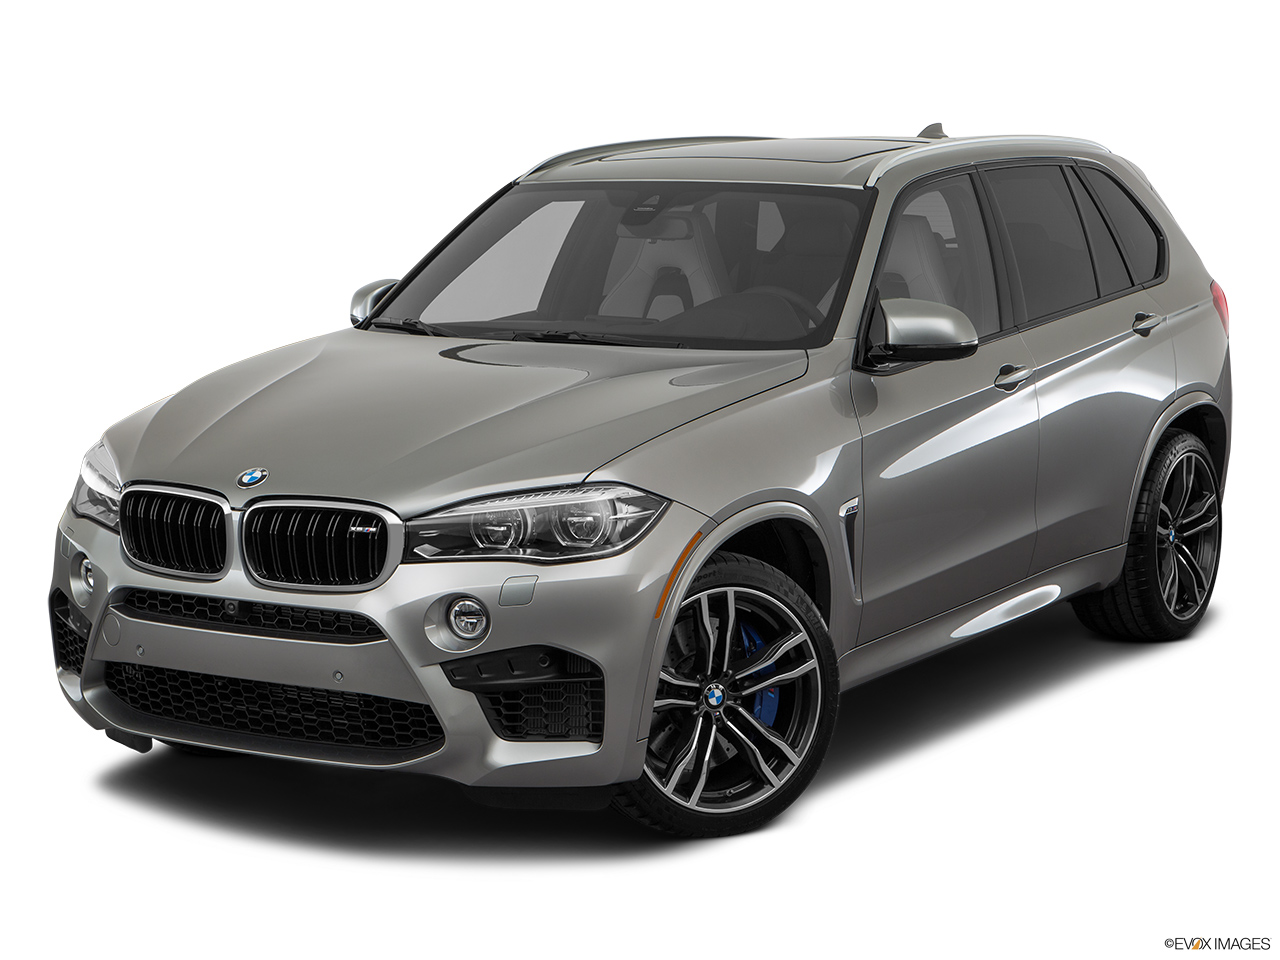 car features list for bmw x5 m 2017 4 4t xdrive uae yallamotor. Black Bedroom Furniture Sets. Home Design Ideas